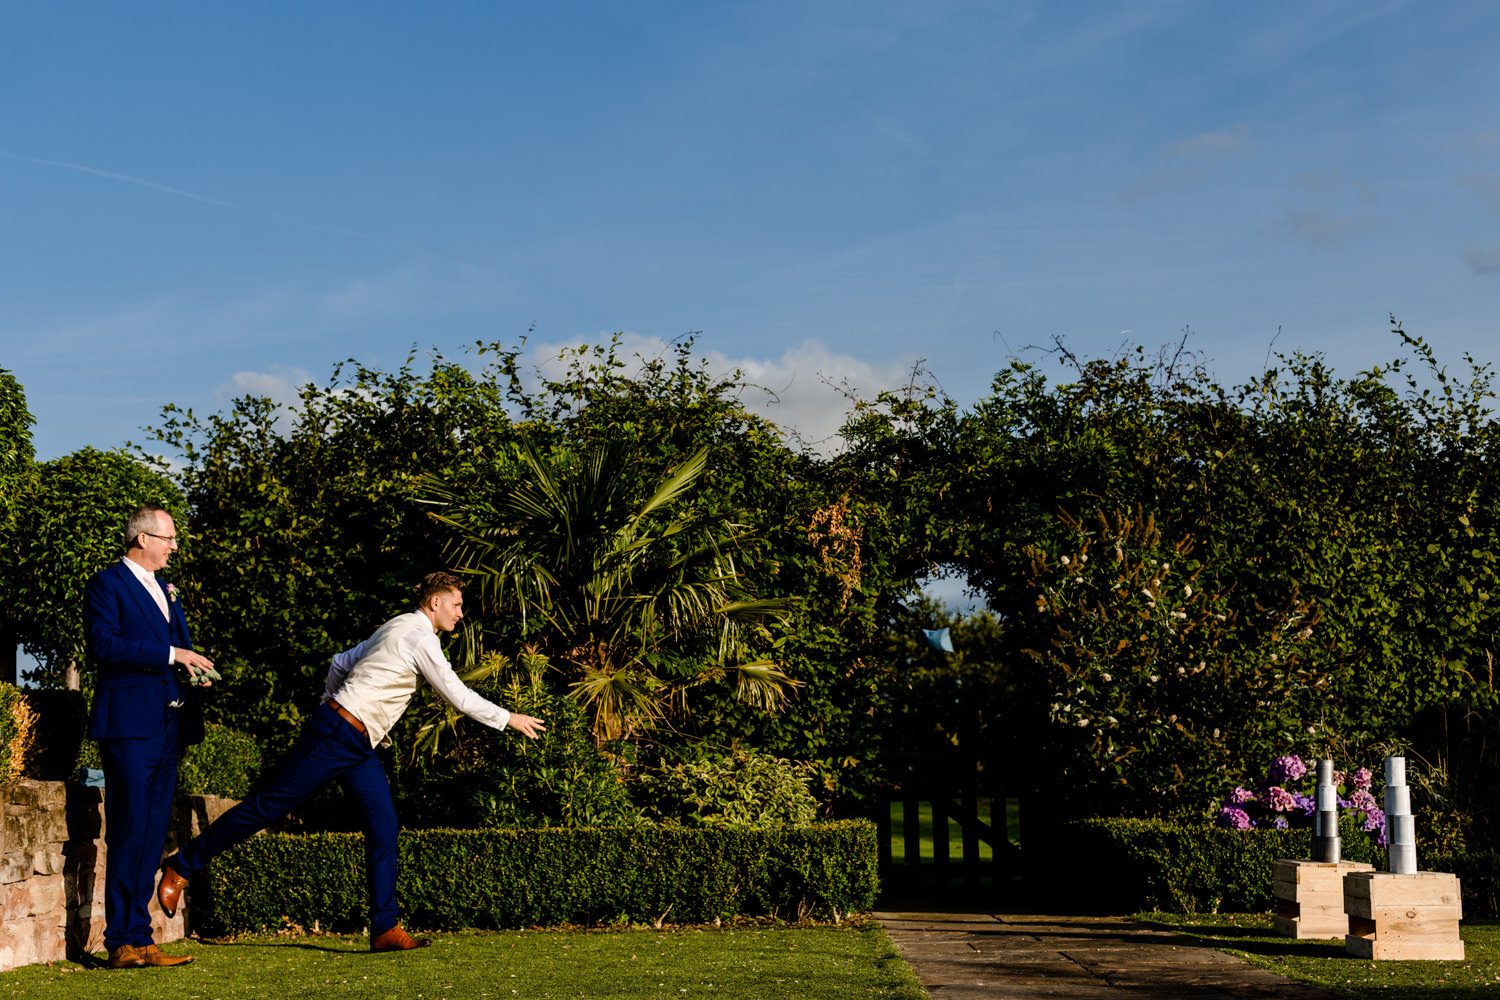 Pryor Hayes in Cheshire's wedding garden, a groom playing lawn games.